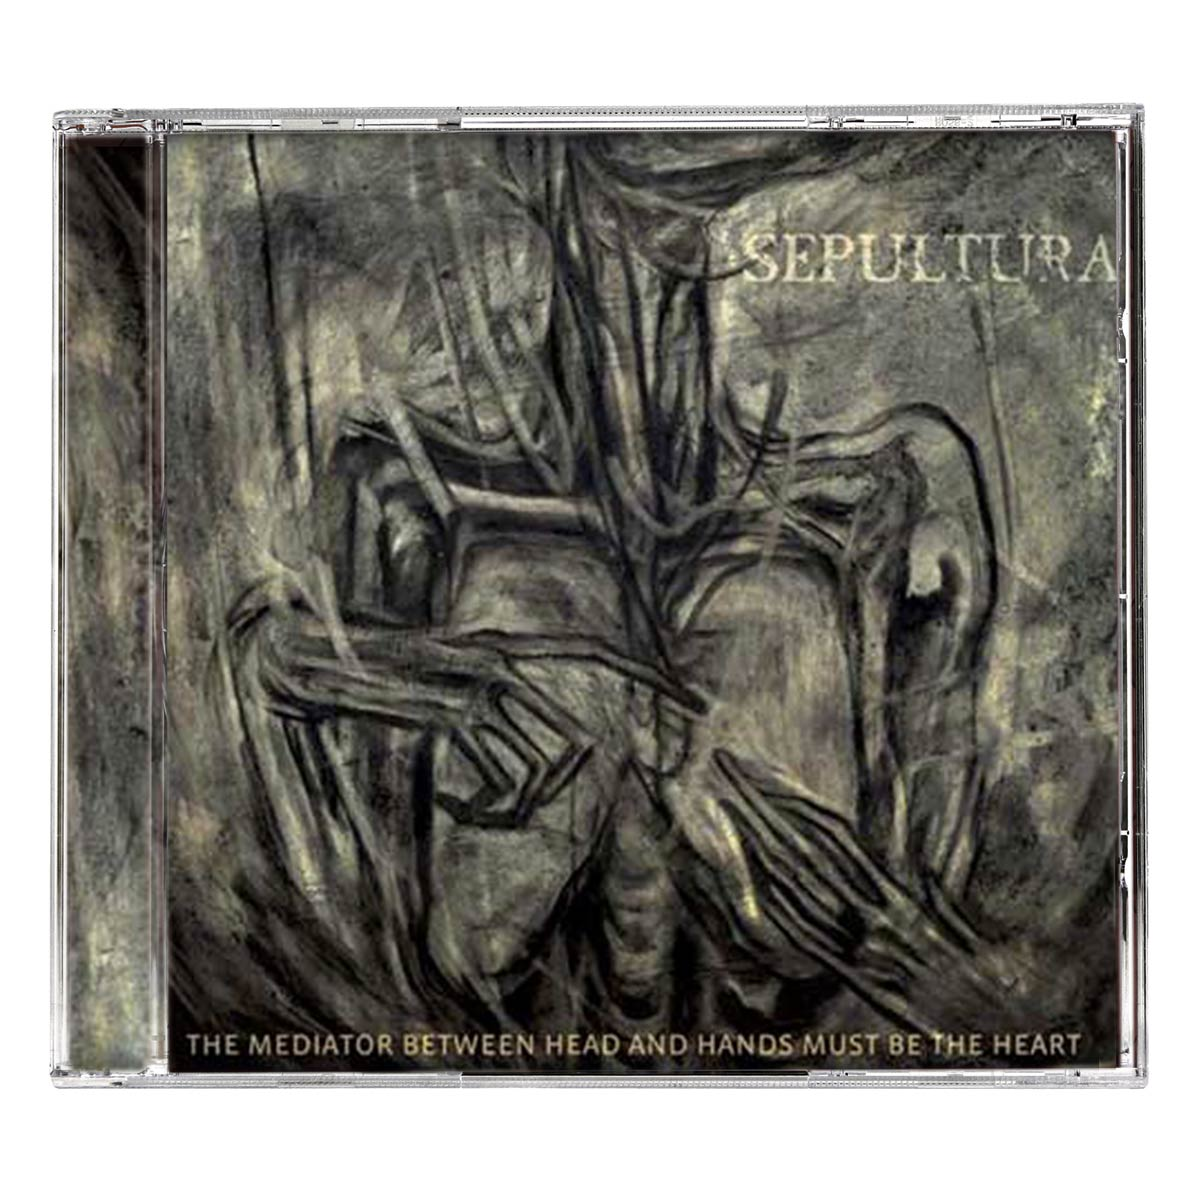 CD Sepultura The Mediator Between Head And Hands Must Be The Heart